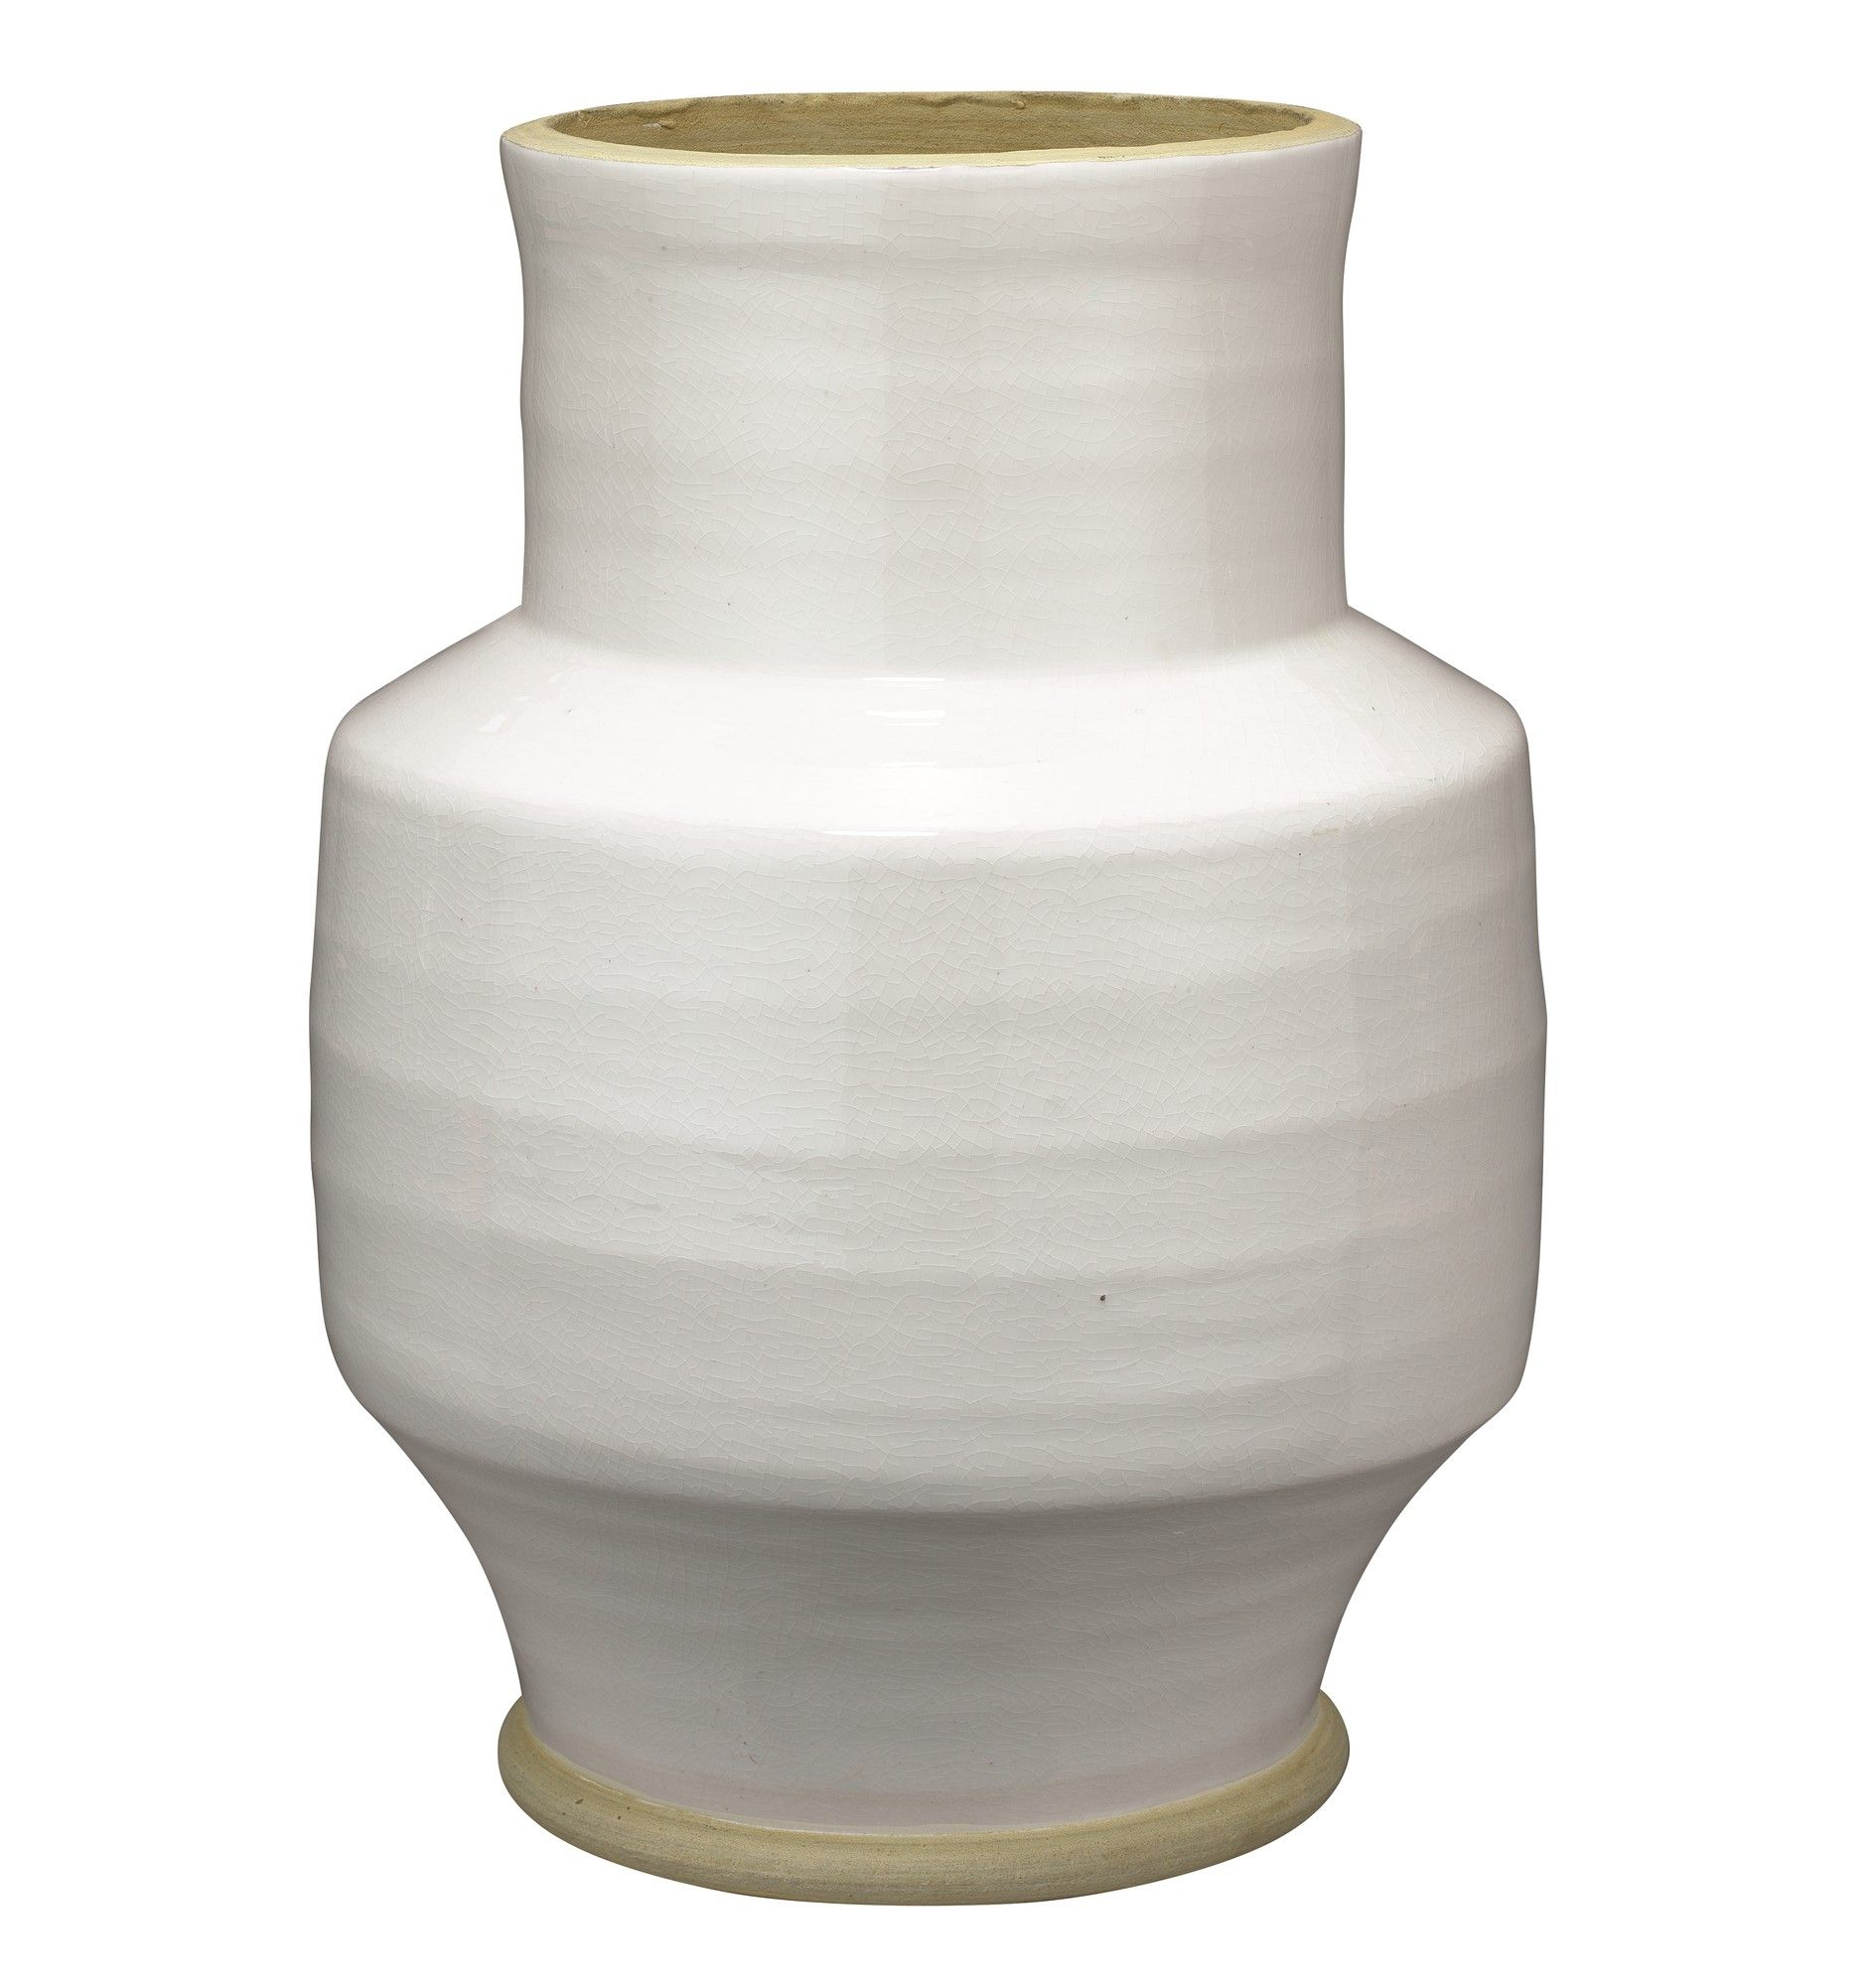 Tantra chair dimensions  Solstice Ceramic Vase  Products  Pinterest  Ceramic vase and Products